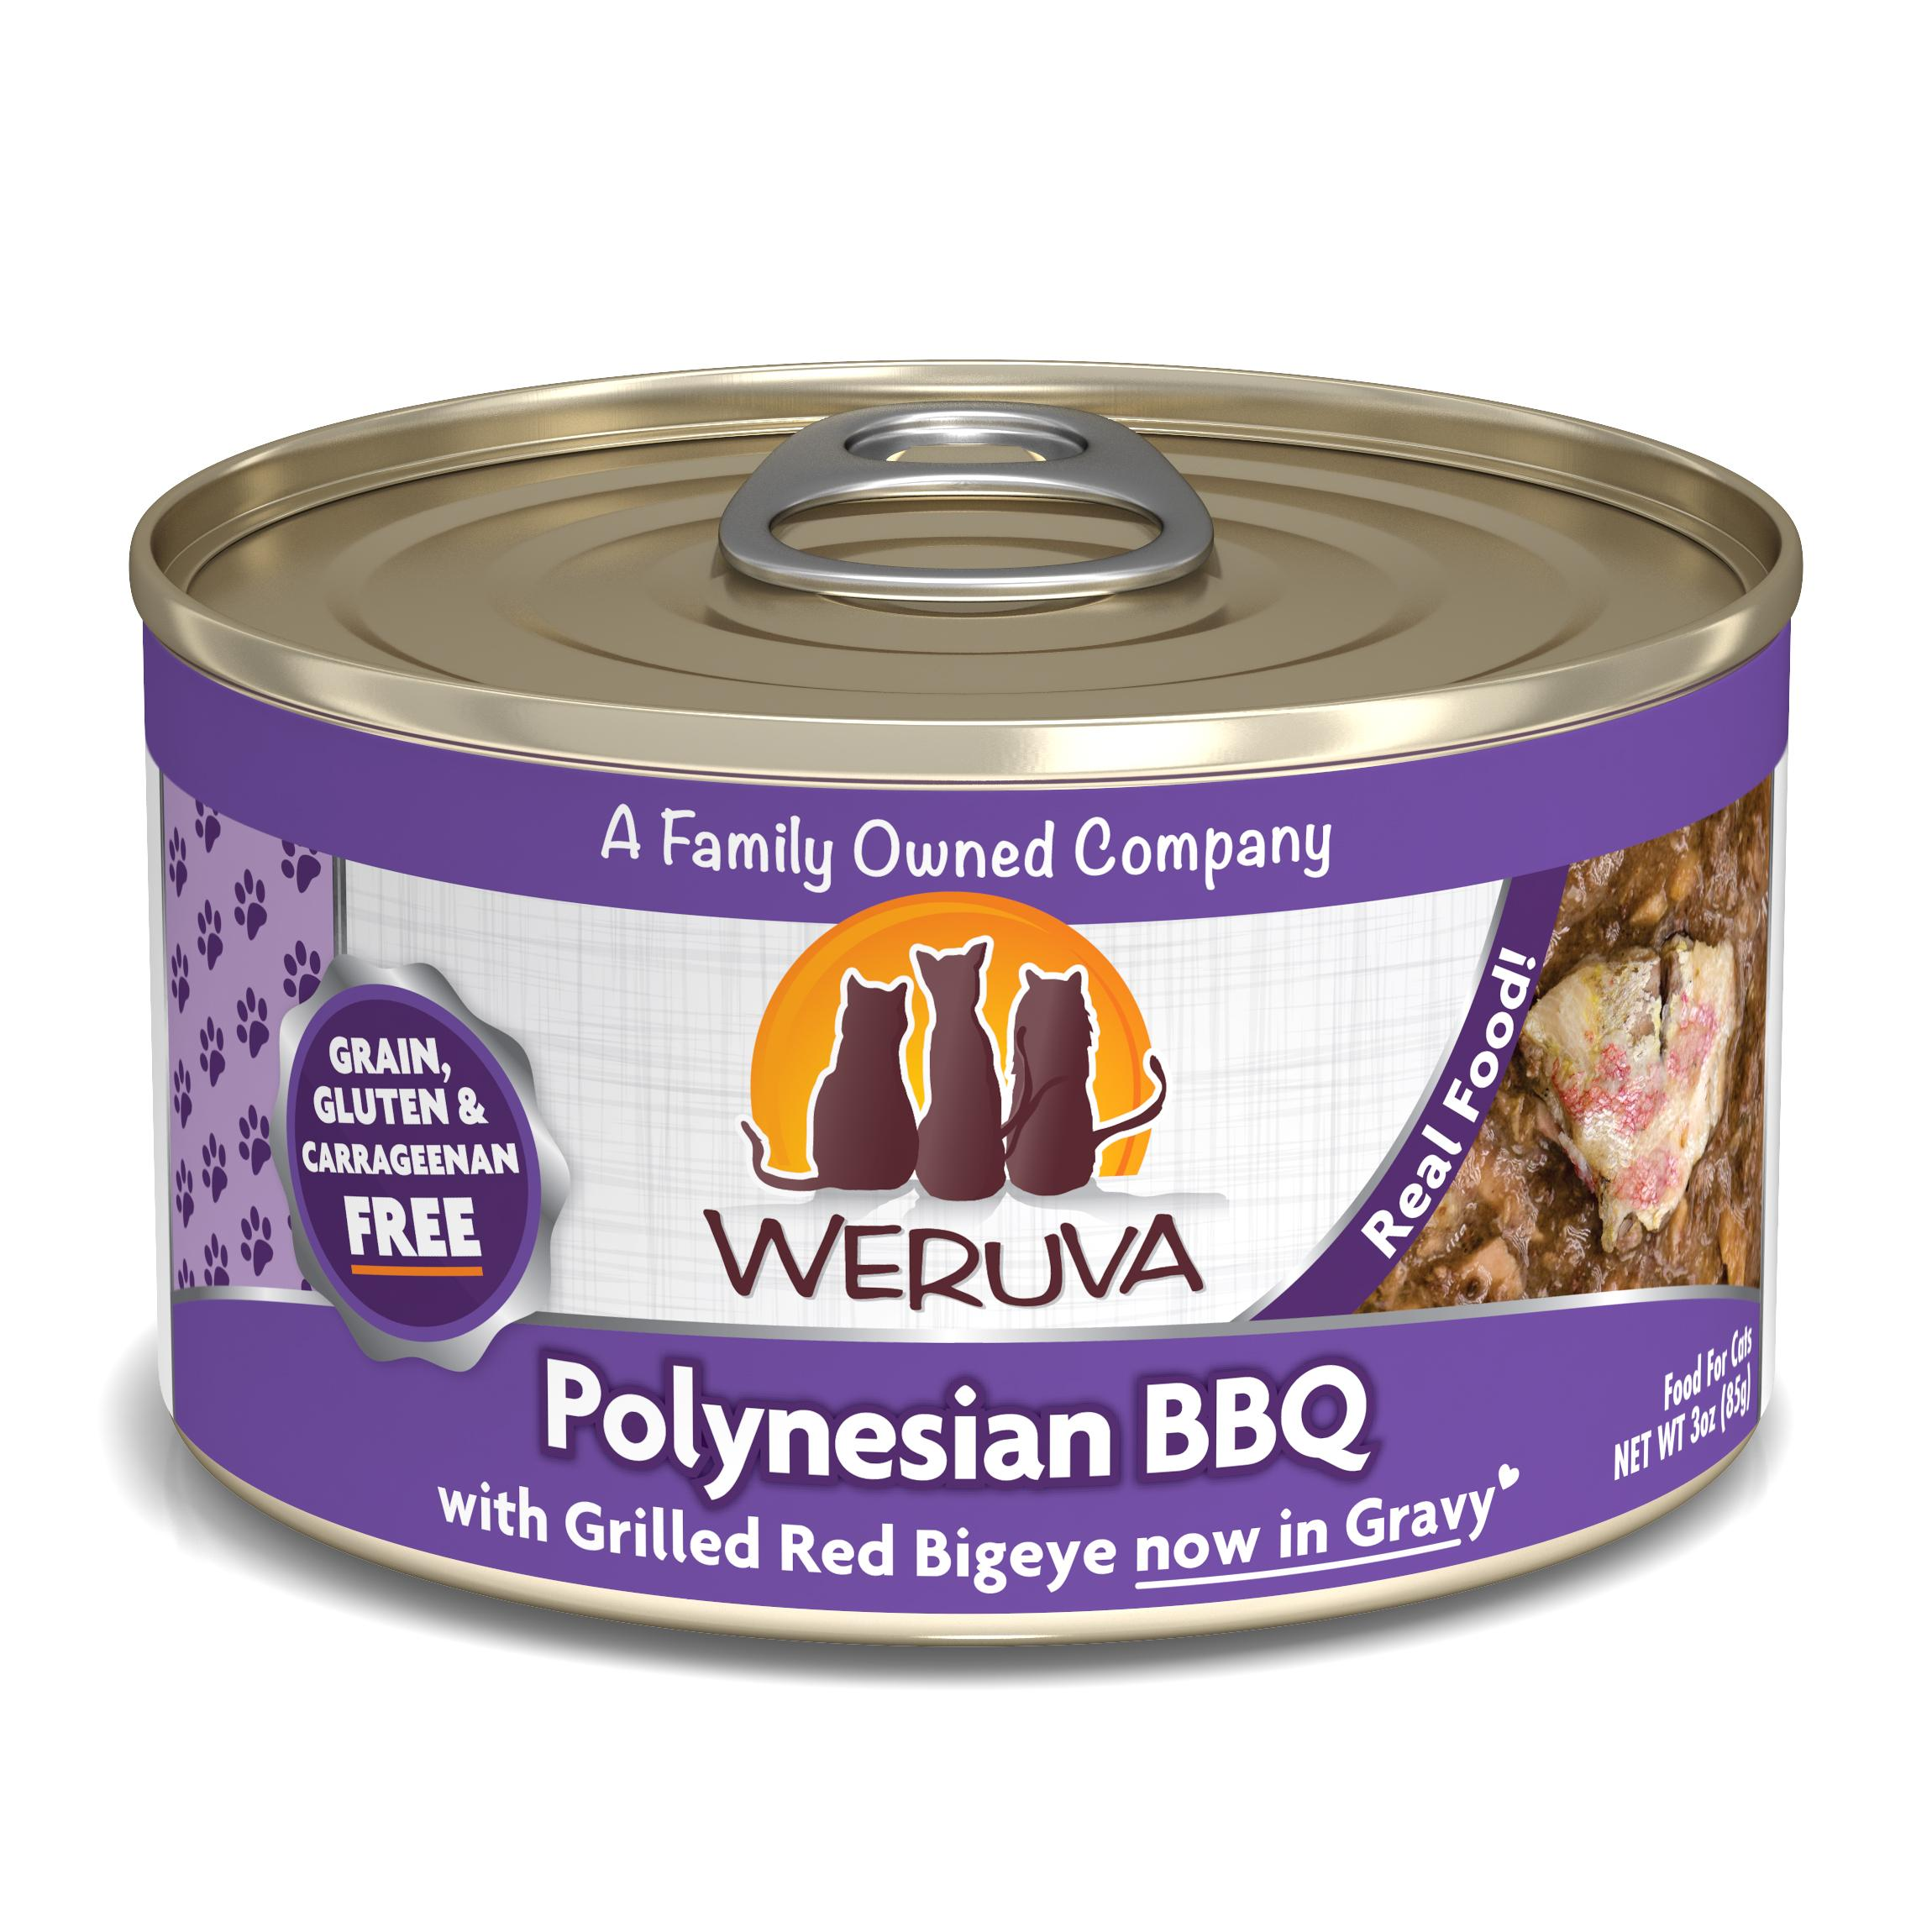 Weruva Cat Classic Polynesian BBQ with Grilled Red Bigeye Grain-Free Wet Cat Food Image